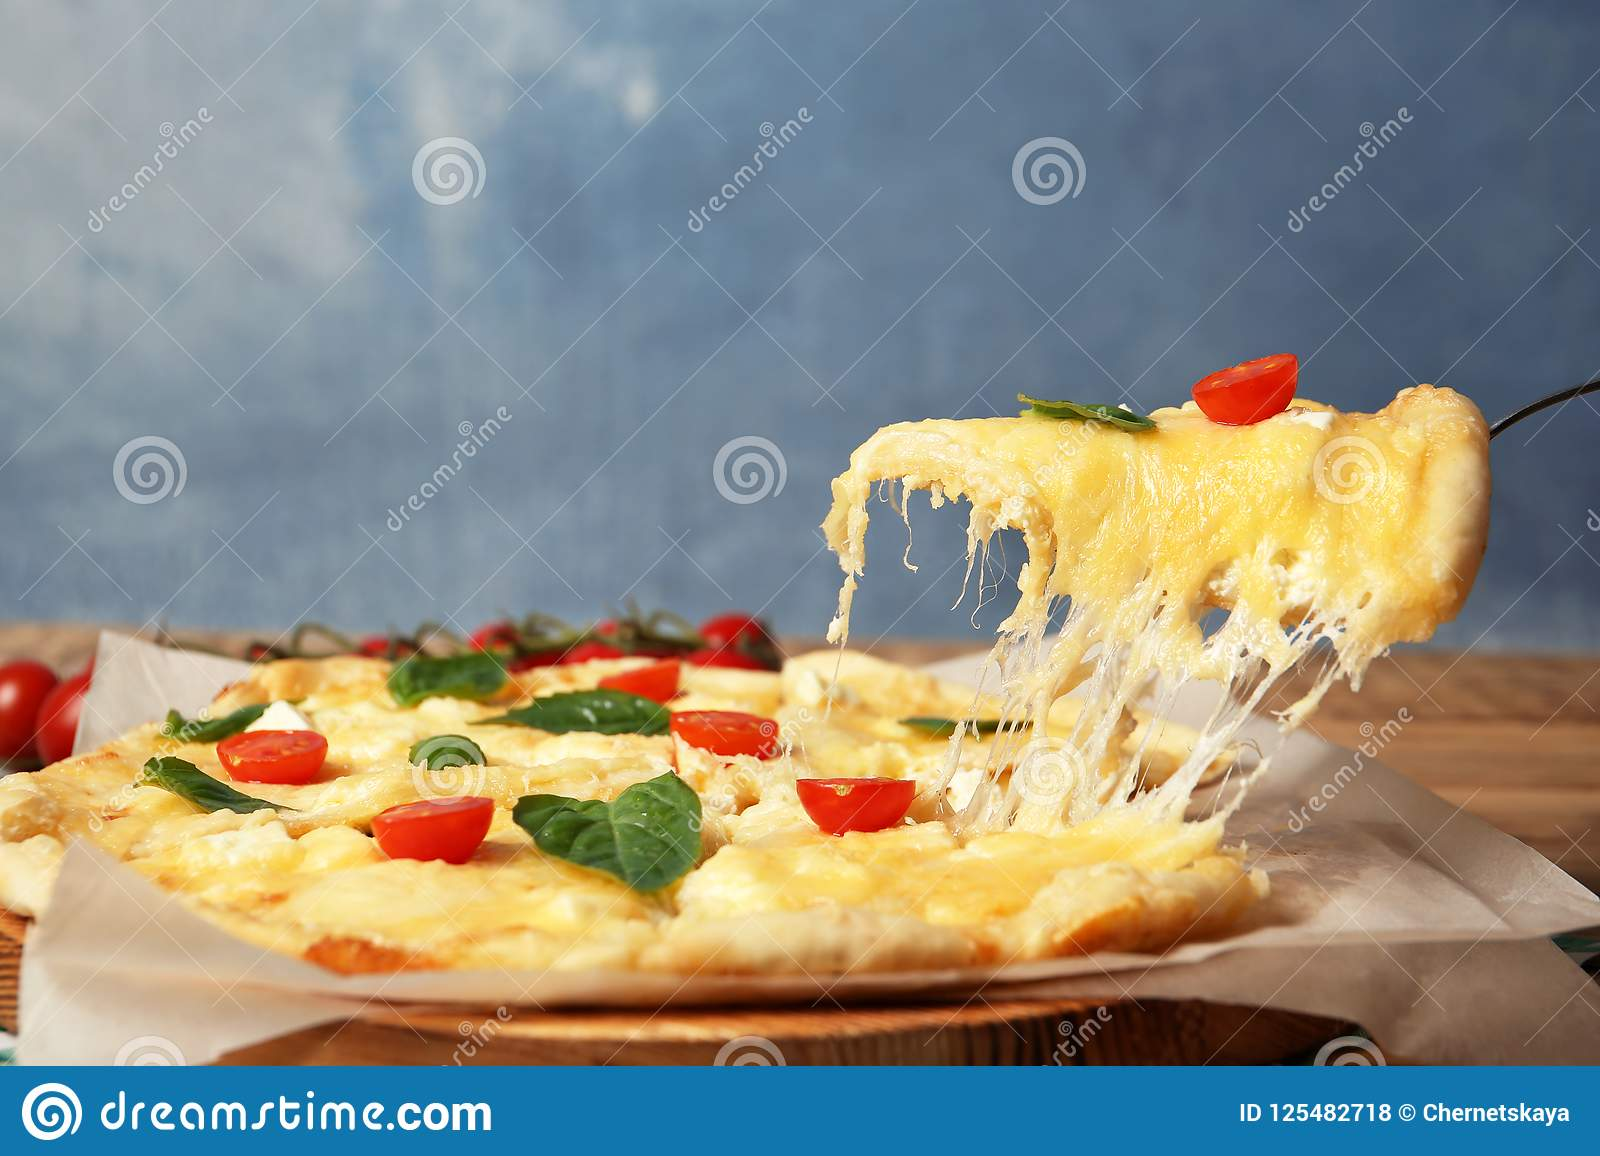 Taking tasty homemade pizza slice with melted cheese